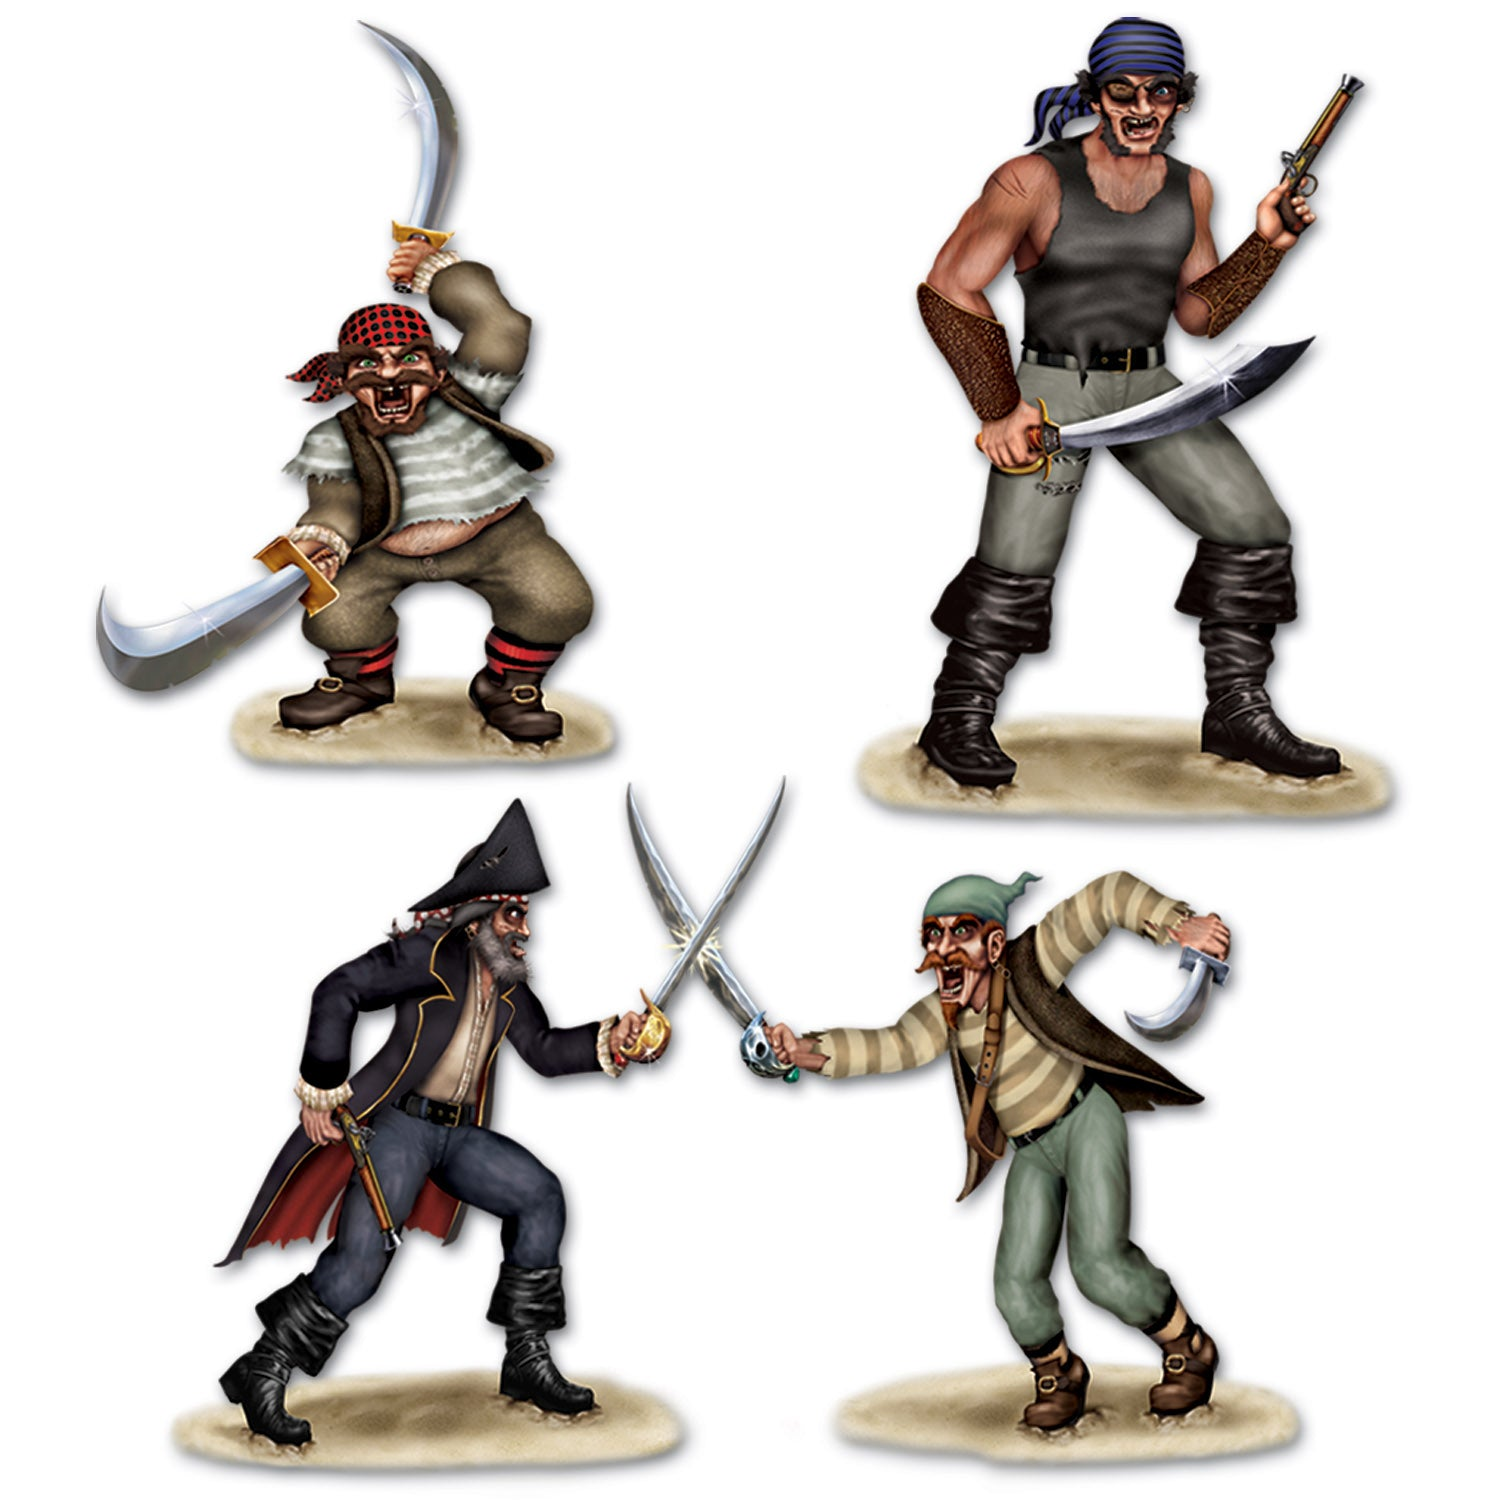 Dueling Pirate & Bandit Props (3/Pkg) by Beistle - Pirate Theme Decorations